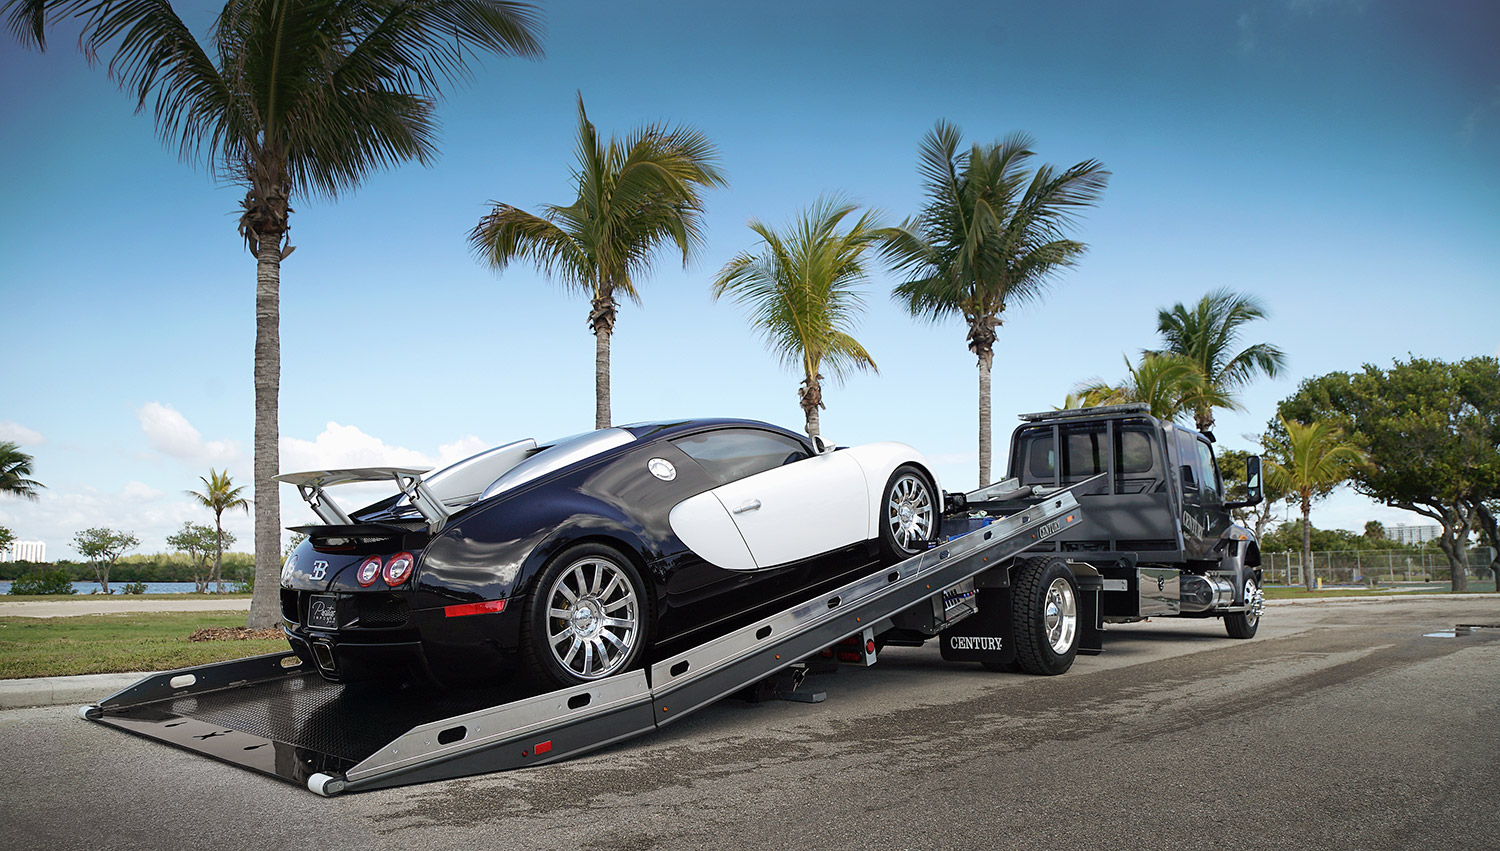 Car Carriers LCG Century Century 12-Series LCG with Bugatti Veyron